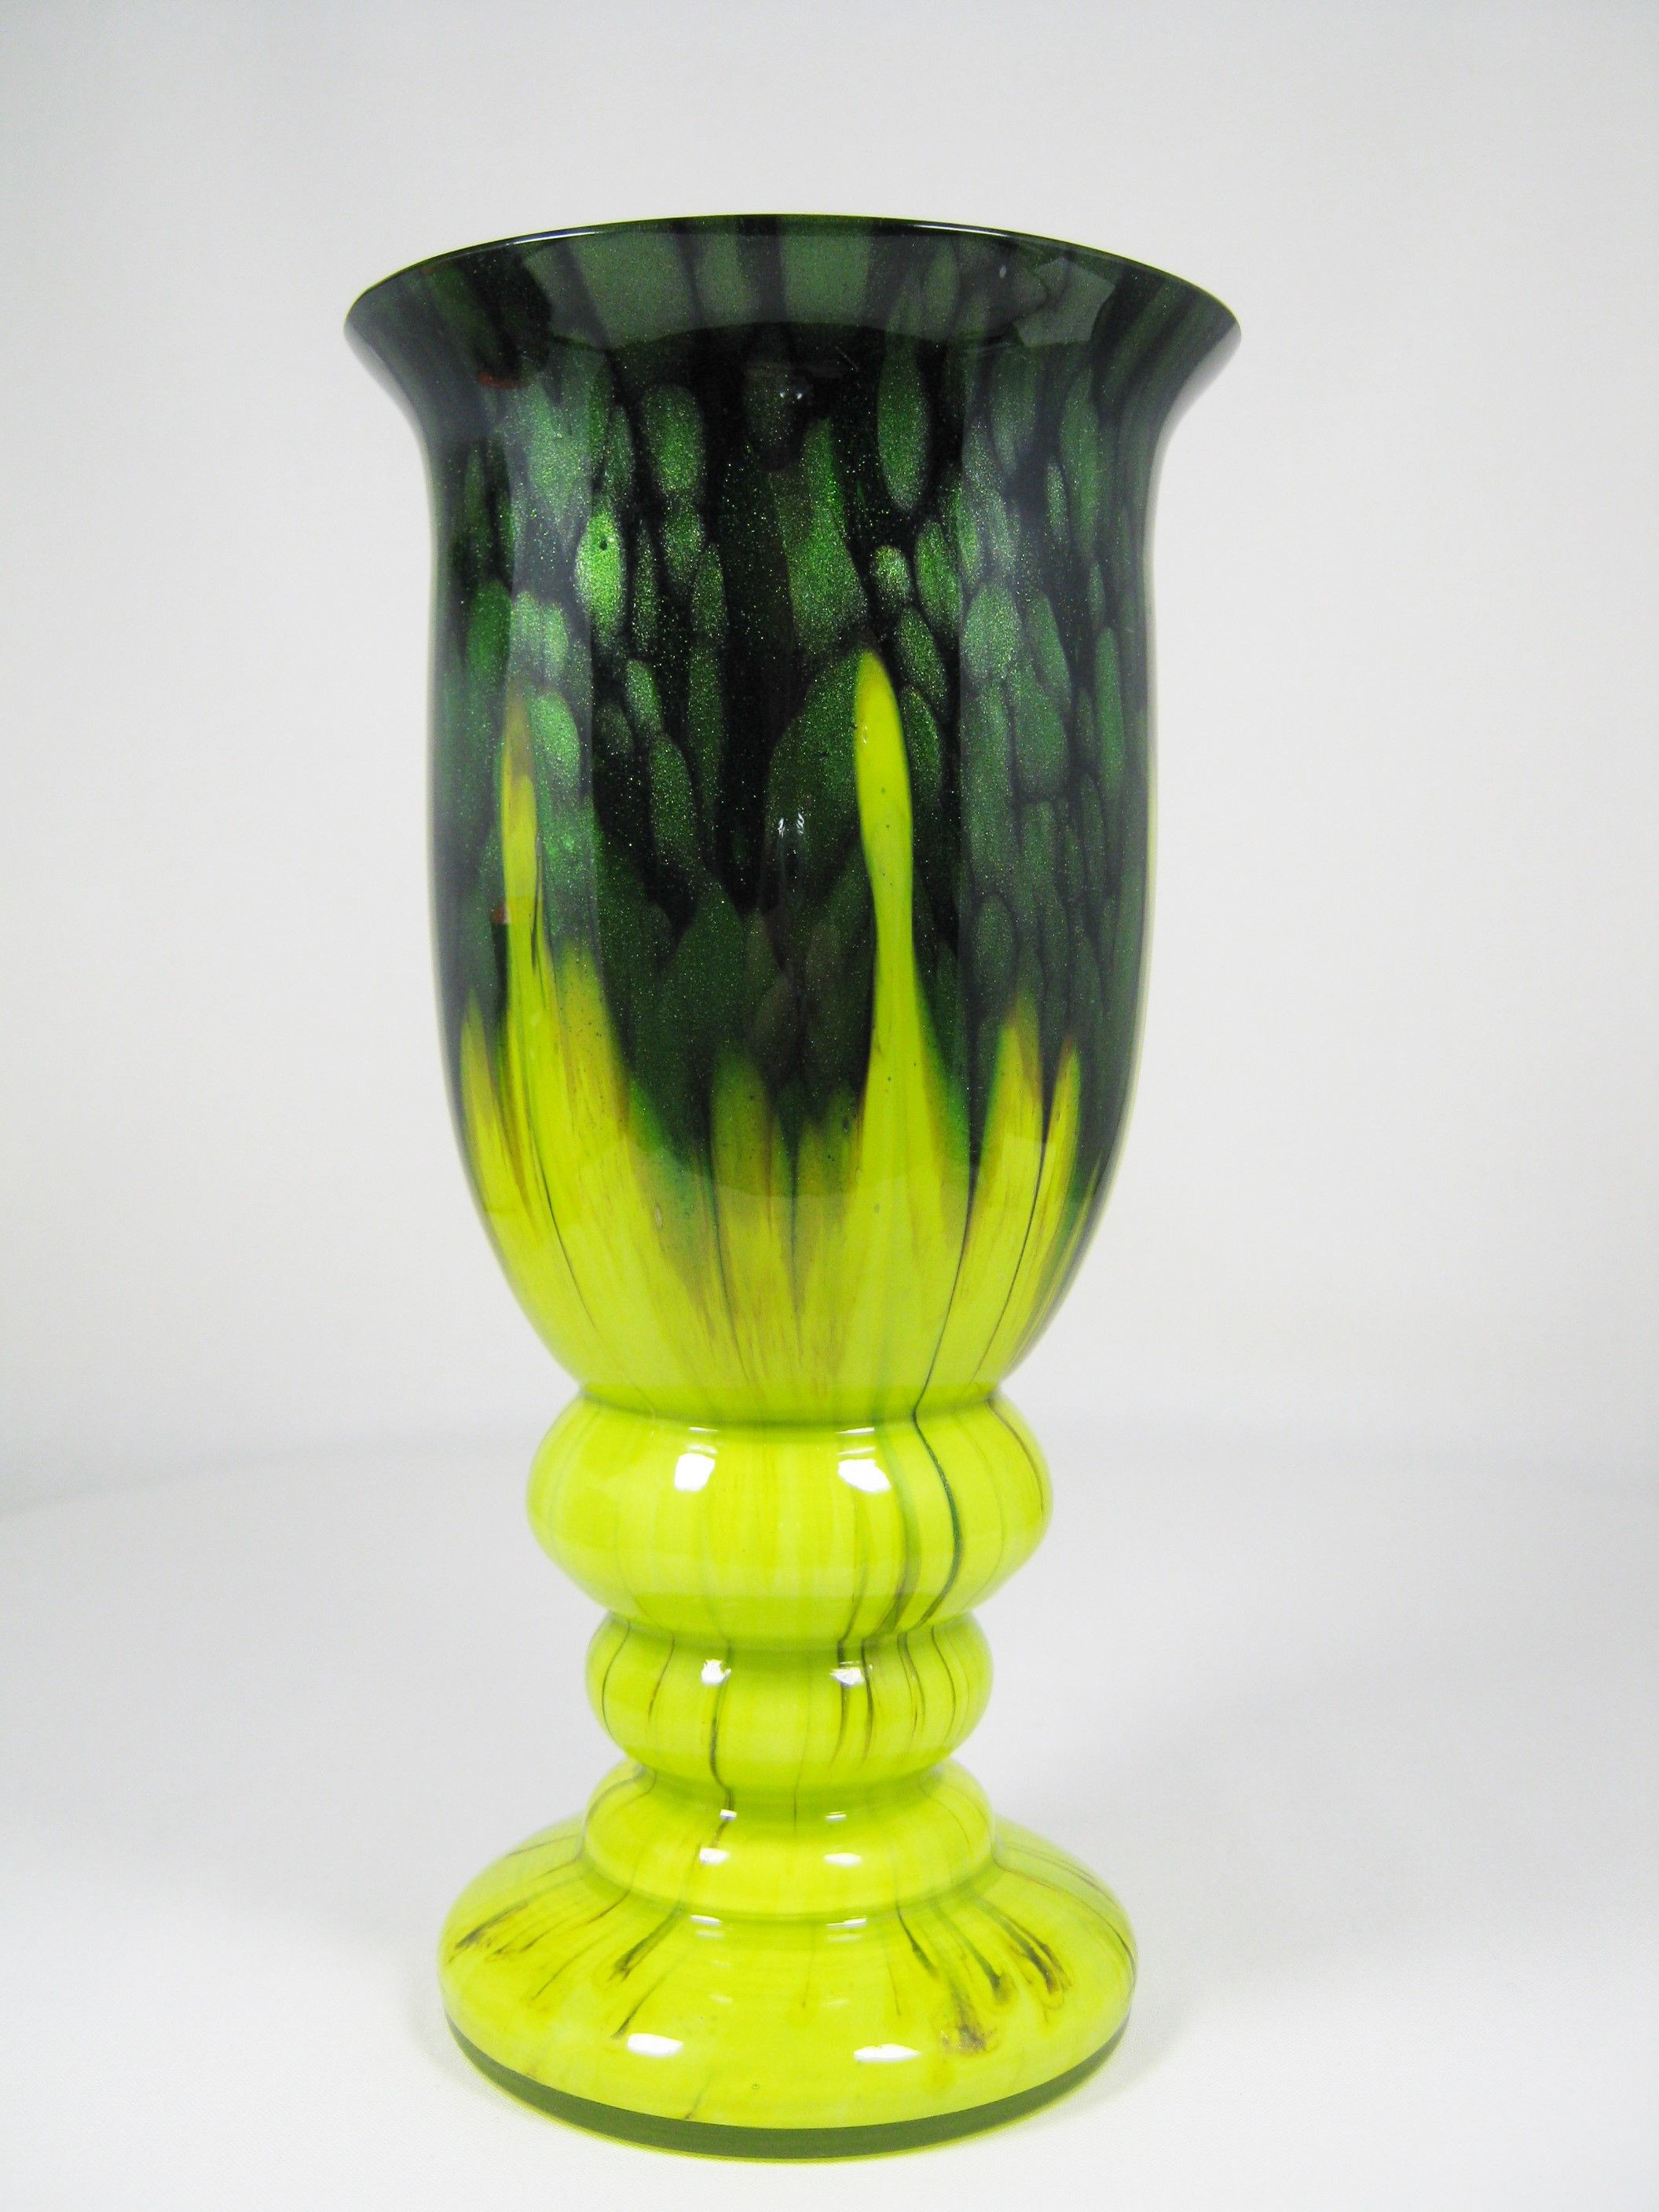 bohemian glass vase of czech art deco glass vase with green adventurine and chartreuse pertaining to czech art deco glass vase with green adventurine and chartreuse yellow base on an amethyst ground ca 1920s 30s ruckl